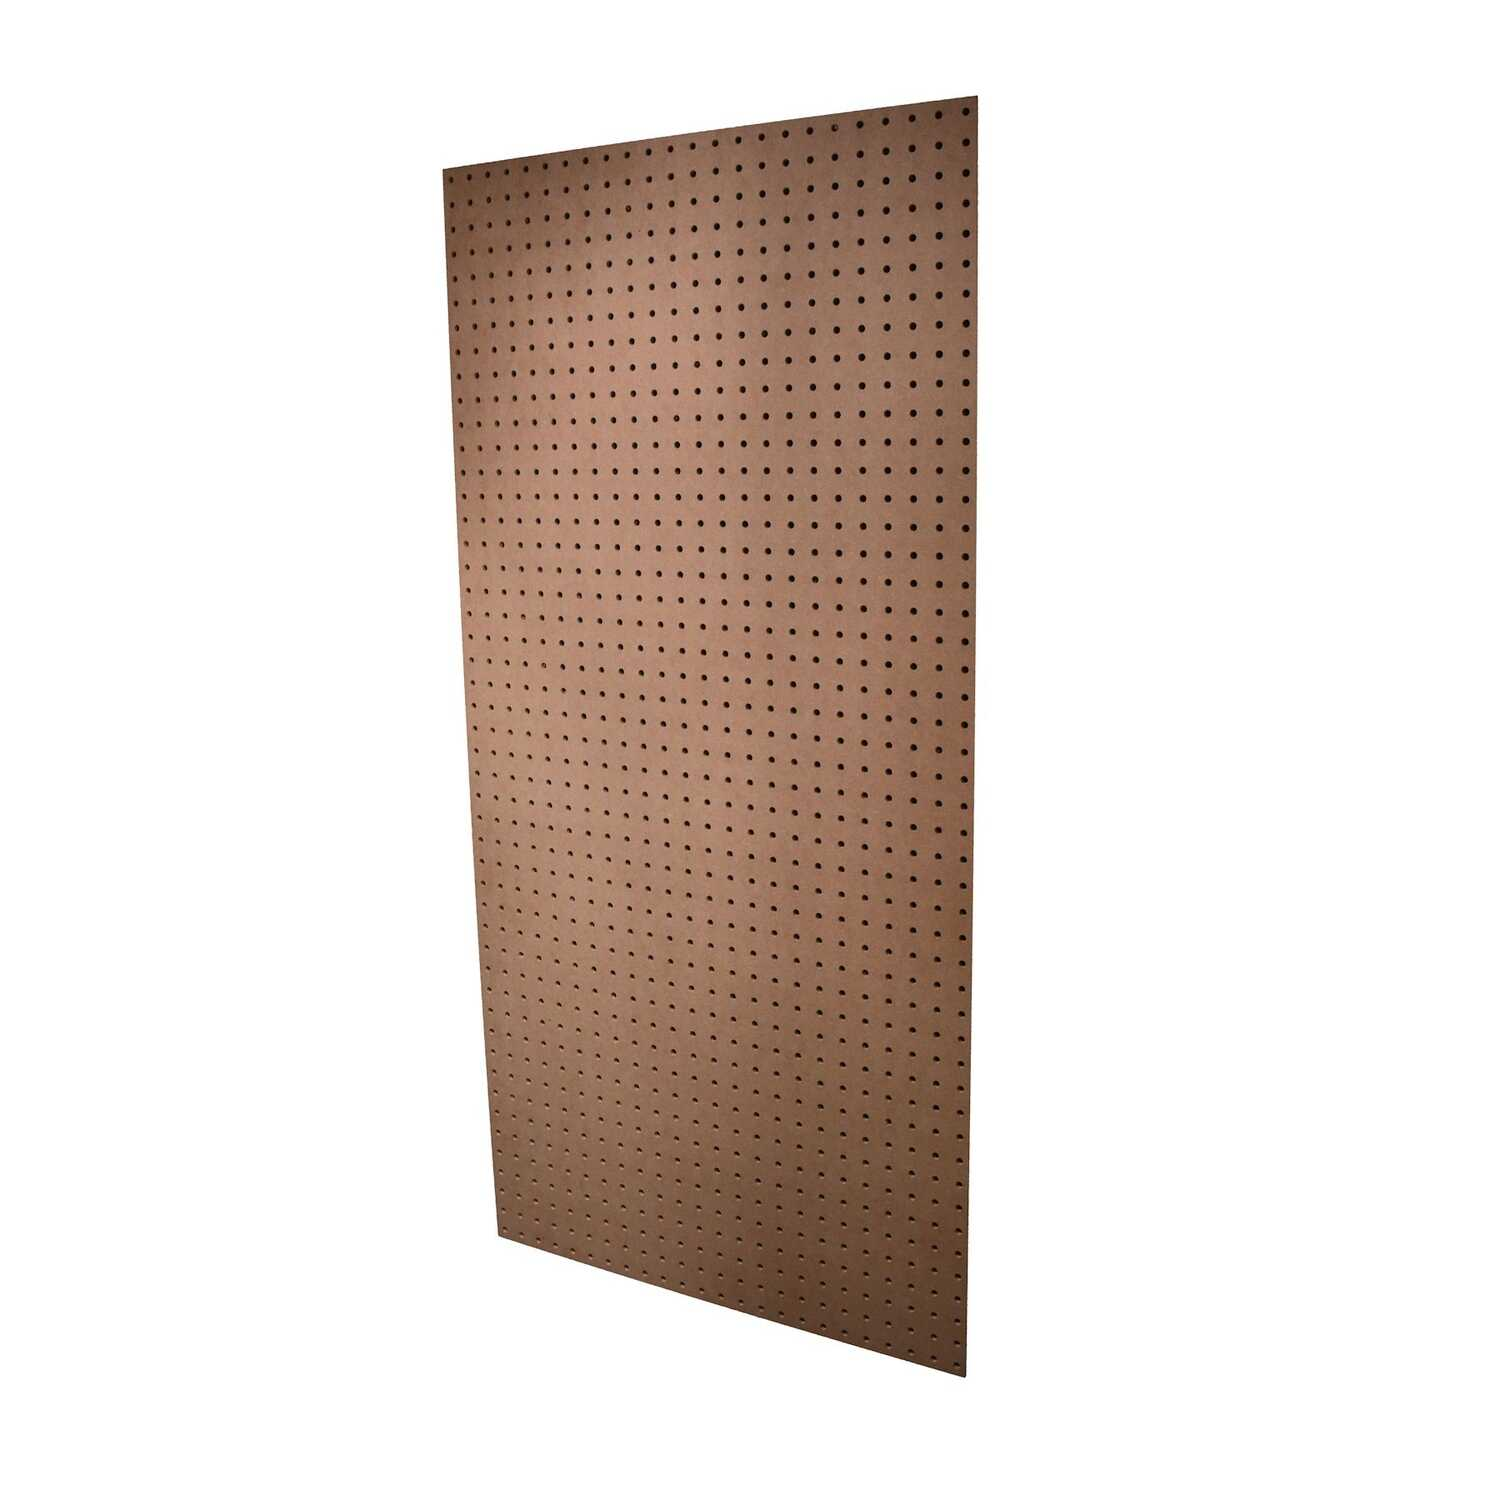 American Wood Moulding  2 ft. W x 4 ft. L x 3/16 in.  Medium Fiberboard (MDF)  Peg Board